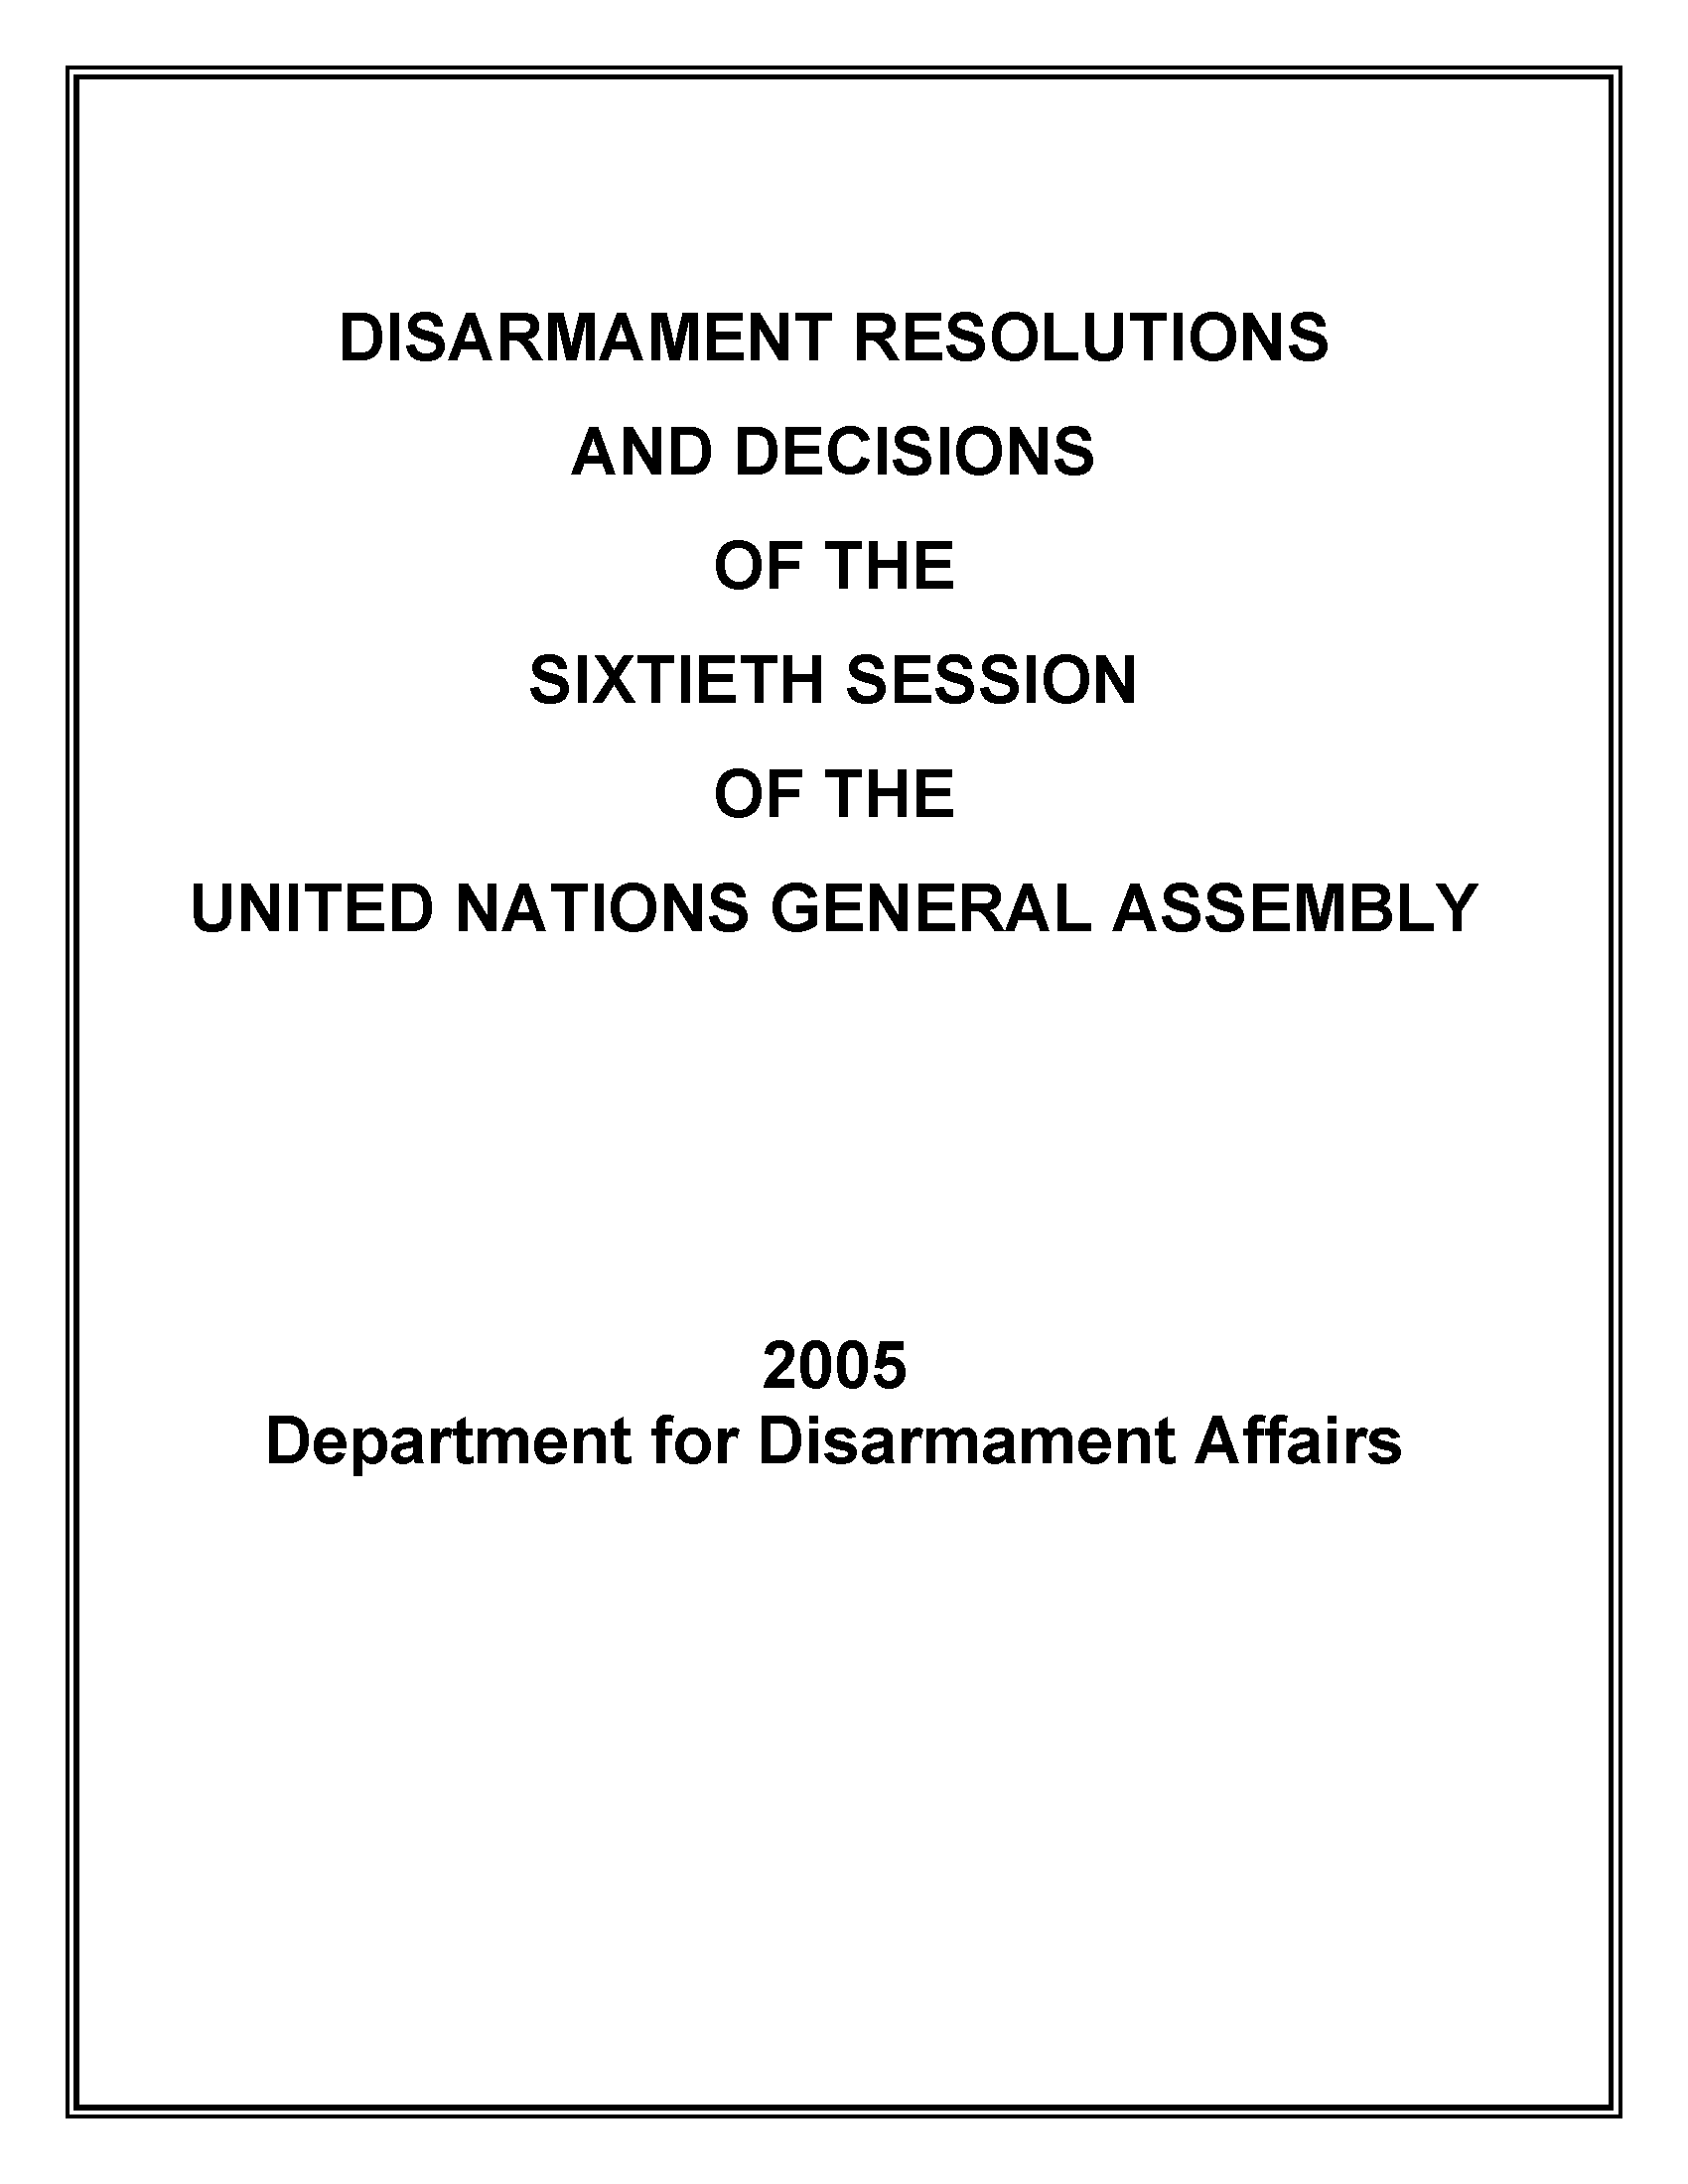 Disarmament Resolutions and Decisions of the Sixtieth Session of the United Nations General Assembly, 2005